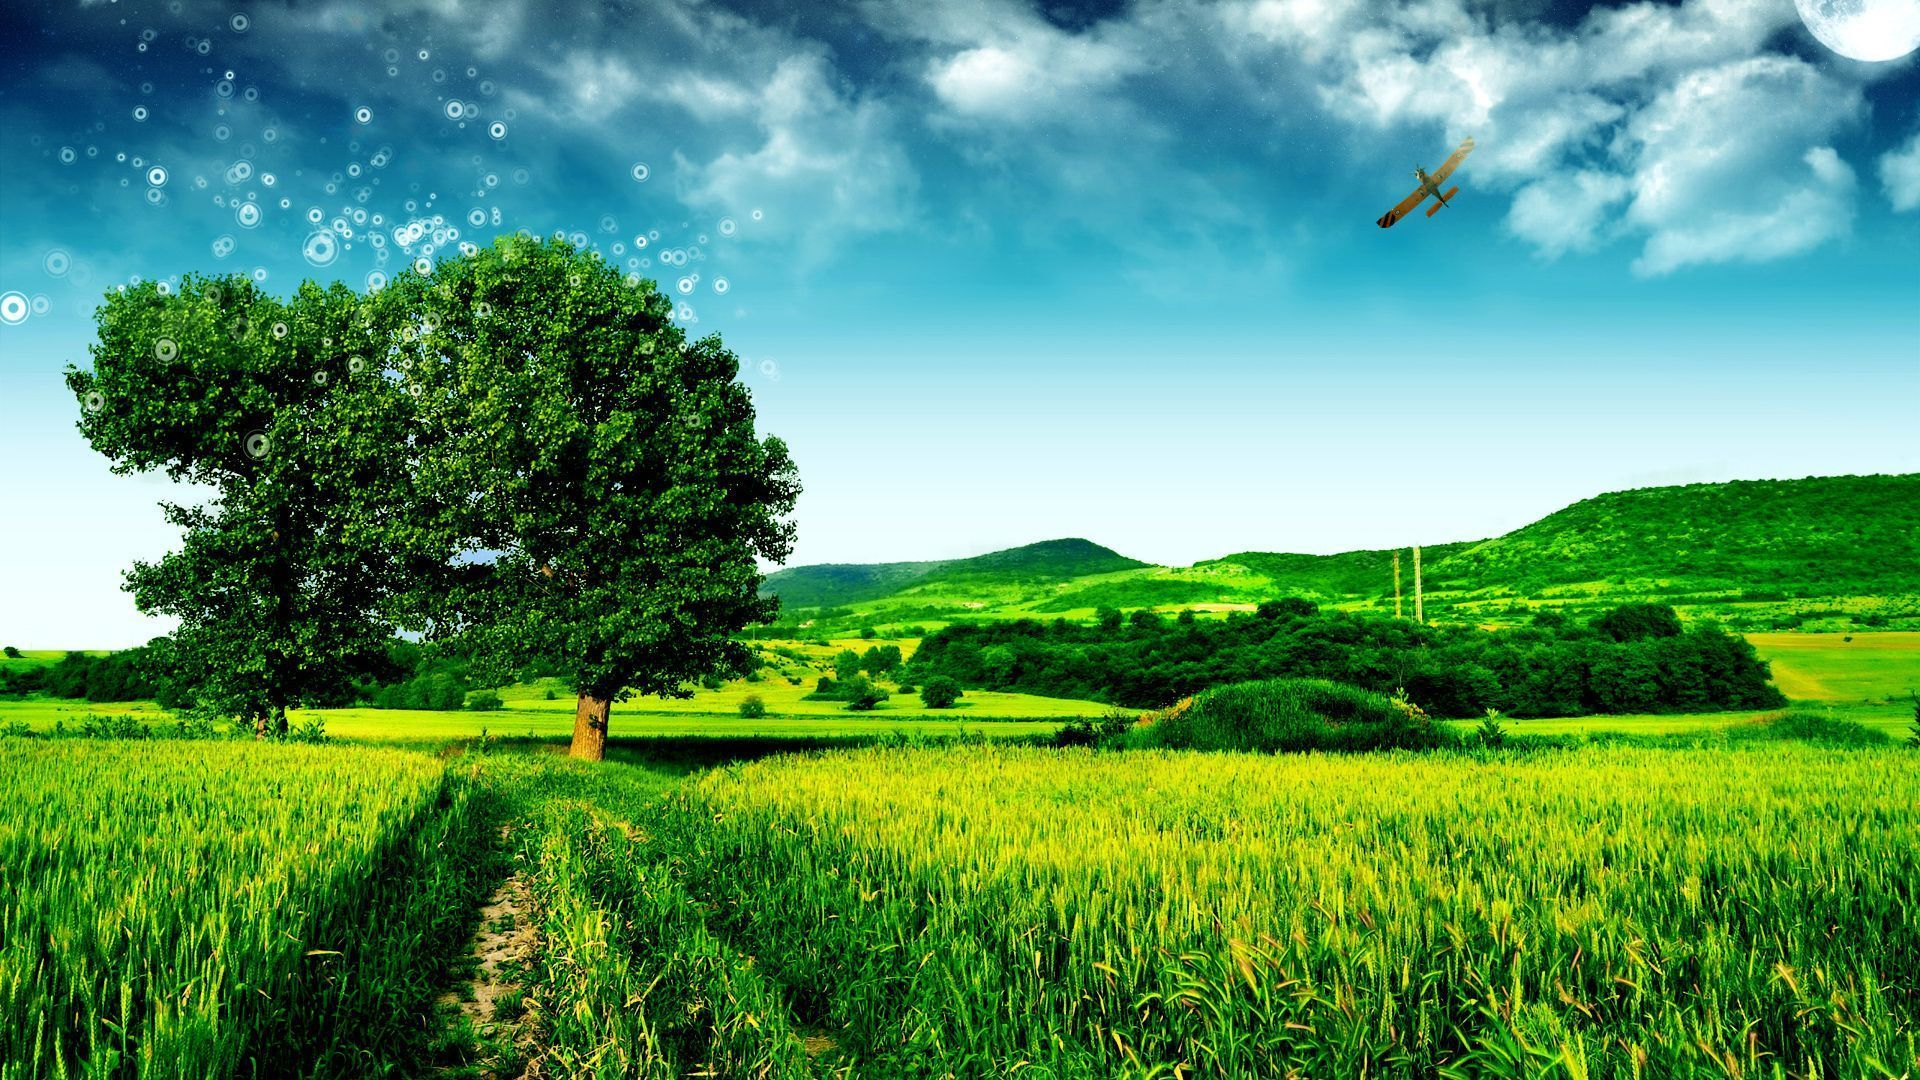 Beautiful Green Landscape Wallpaper Desktop 1920x1080